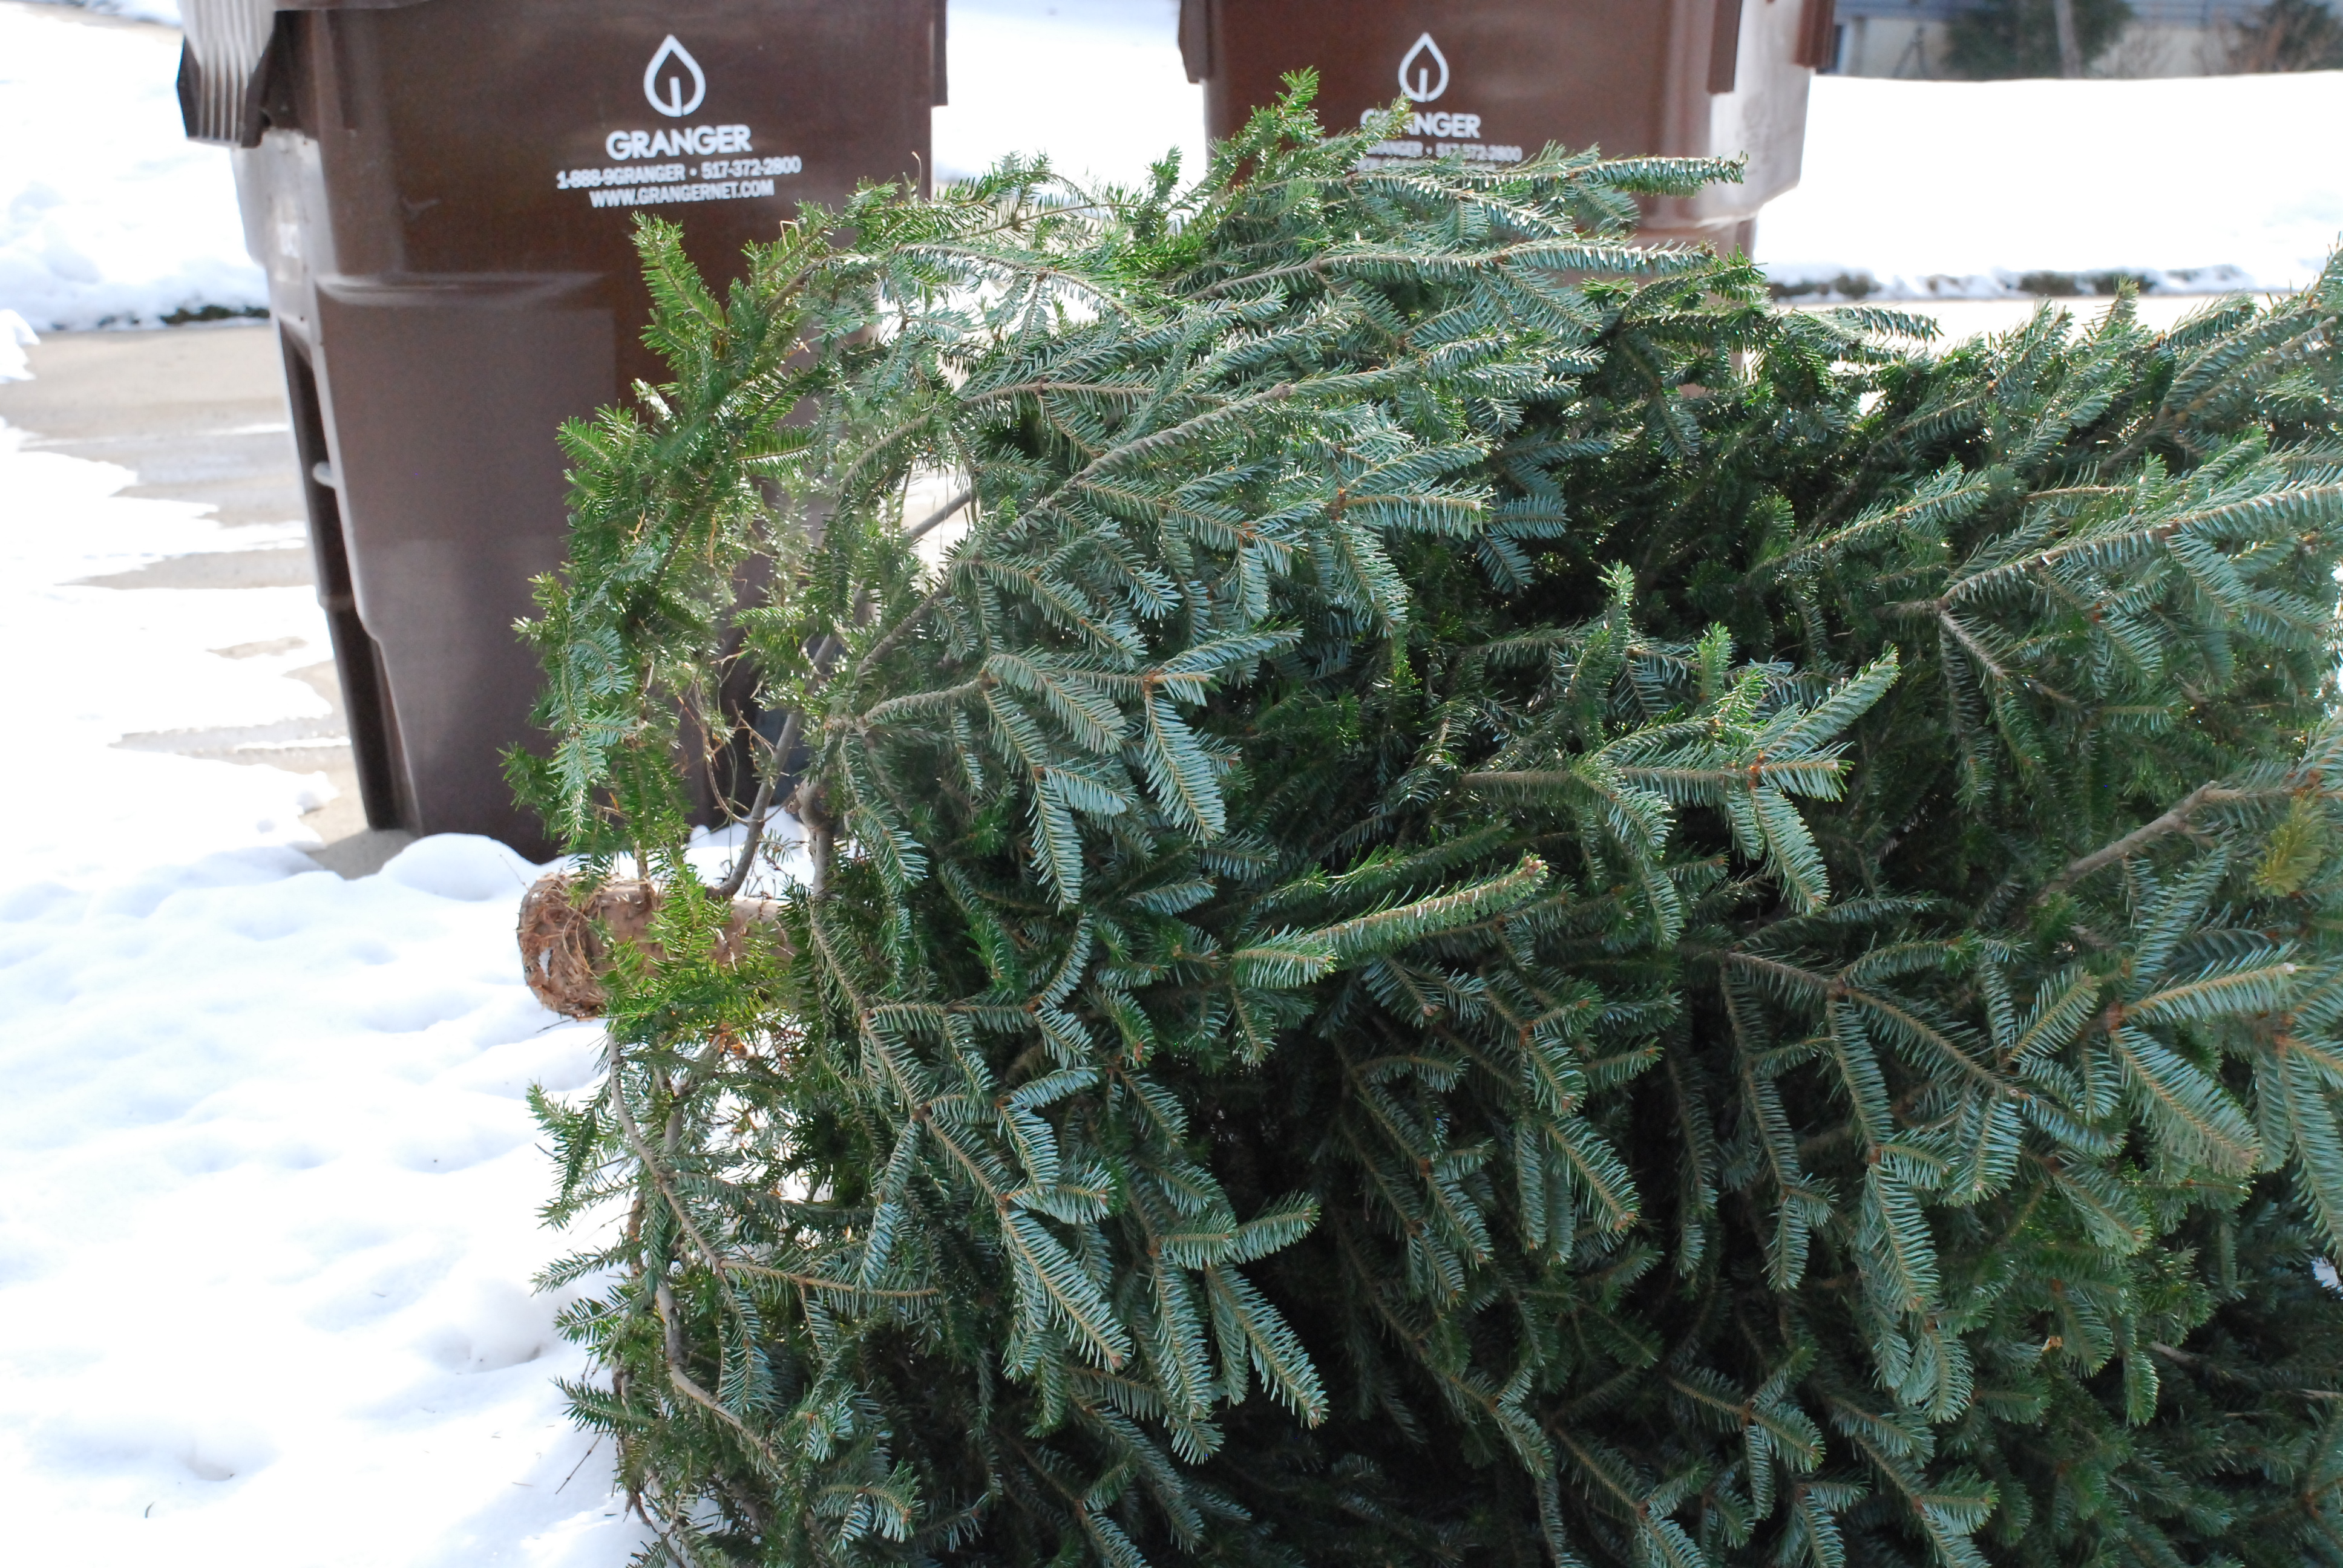 Granger to offer Christmas tree collection services   Granger